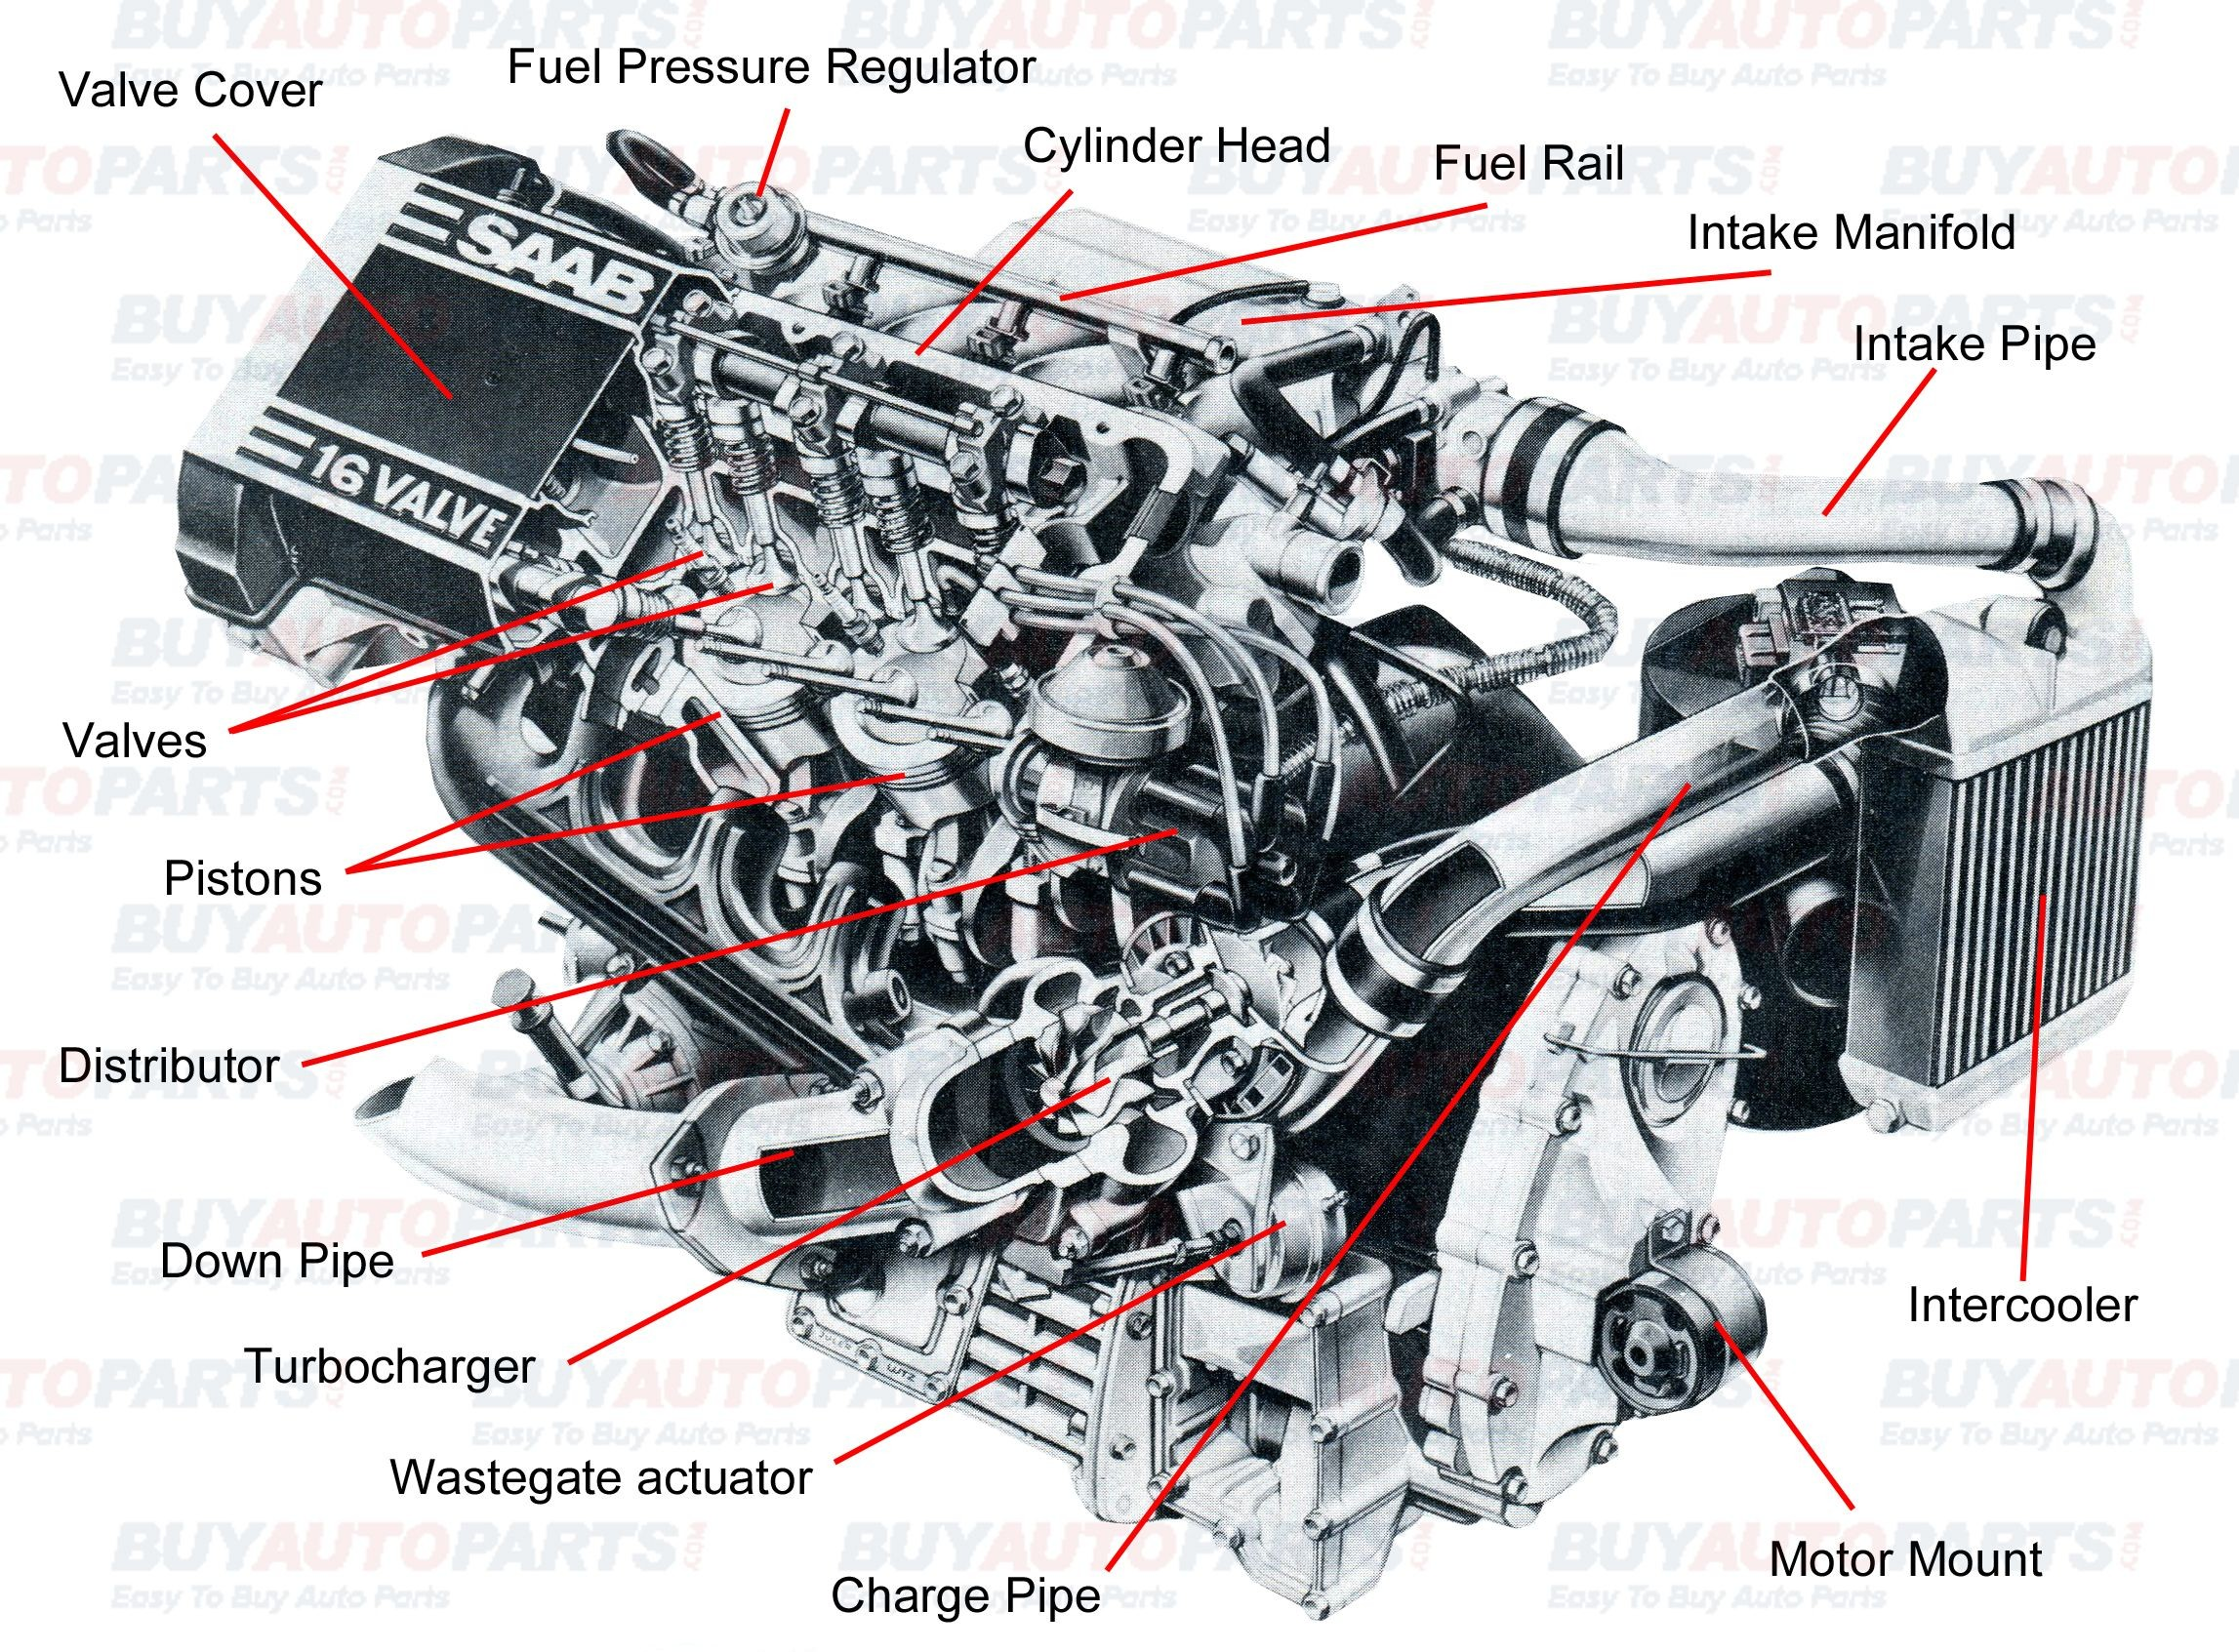 Auto Engine Parts Diagram All Internal Bustion Engines Have the Same Basic Ponents the Of Auto Engine Parts Diagram